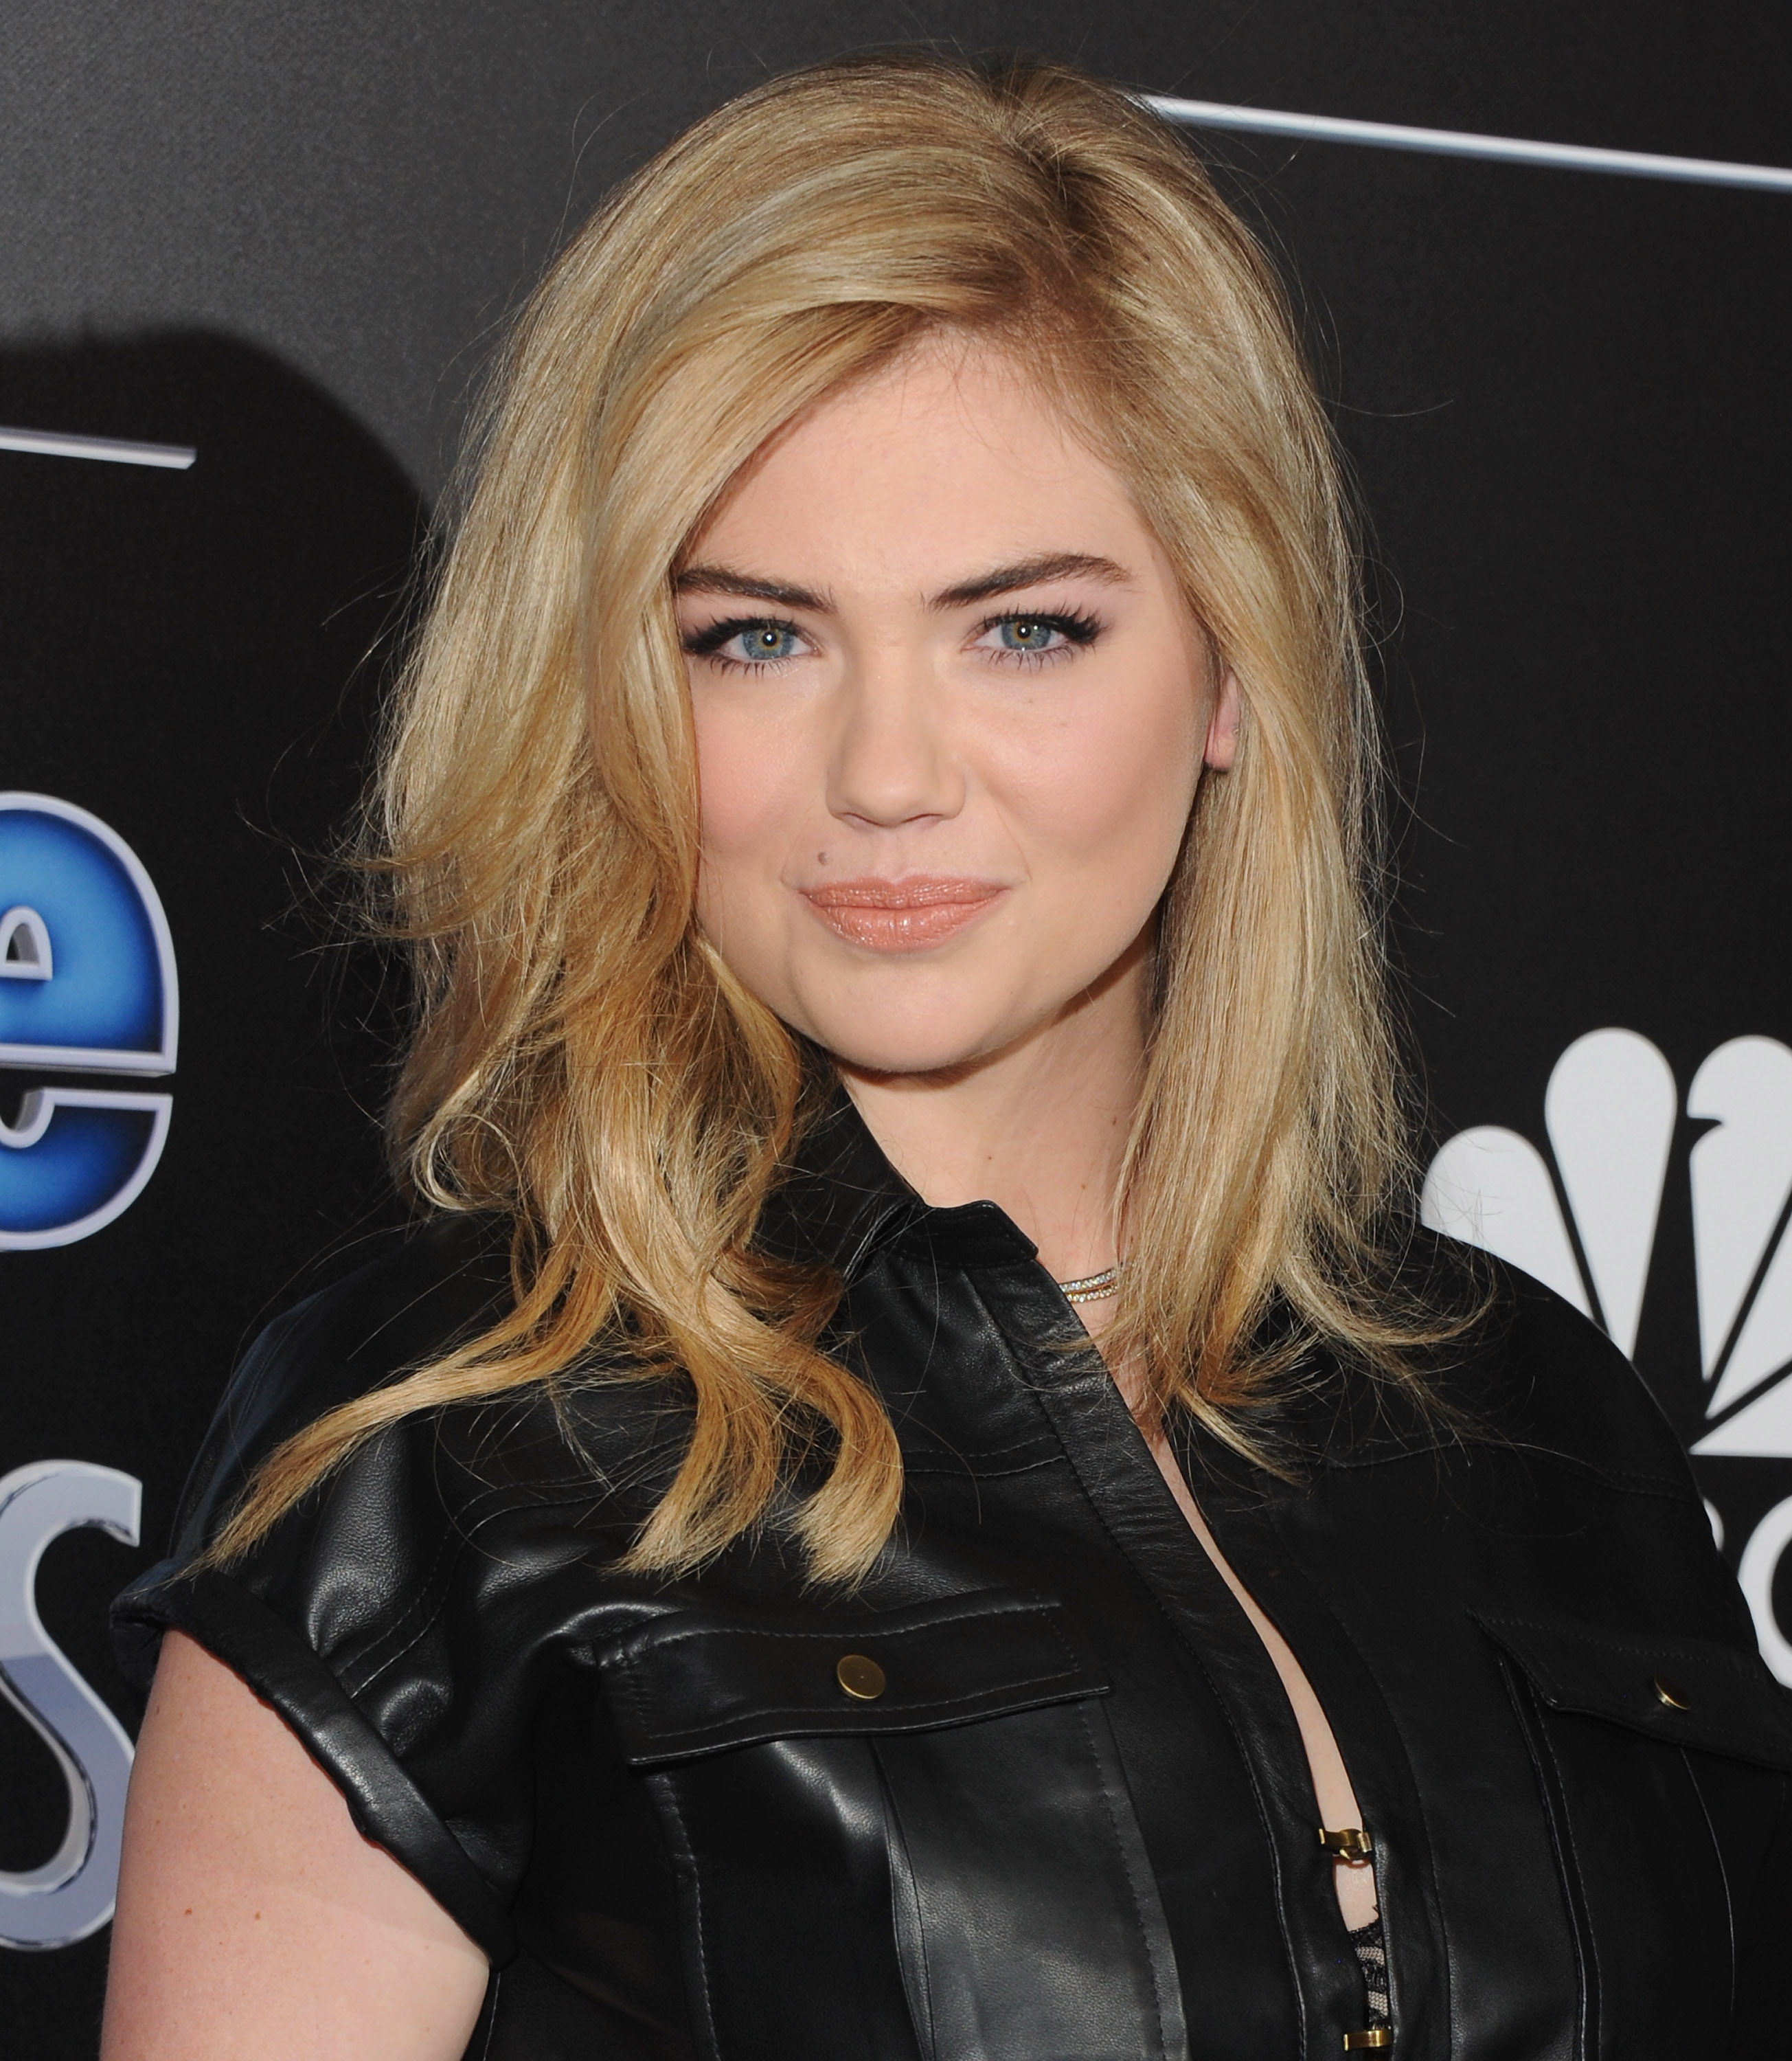 Kate Upton arrives at The PEOPLE Magazine Awards at The Beverly Hilton Hotel on December 18, 2014 in Beverly Hills, California.